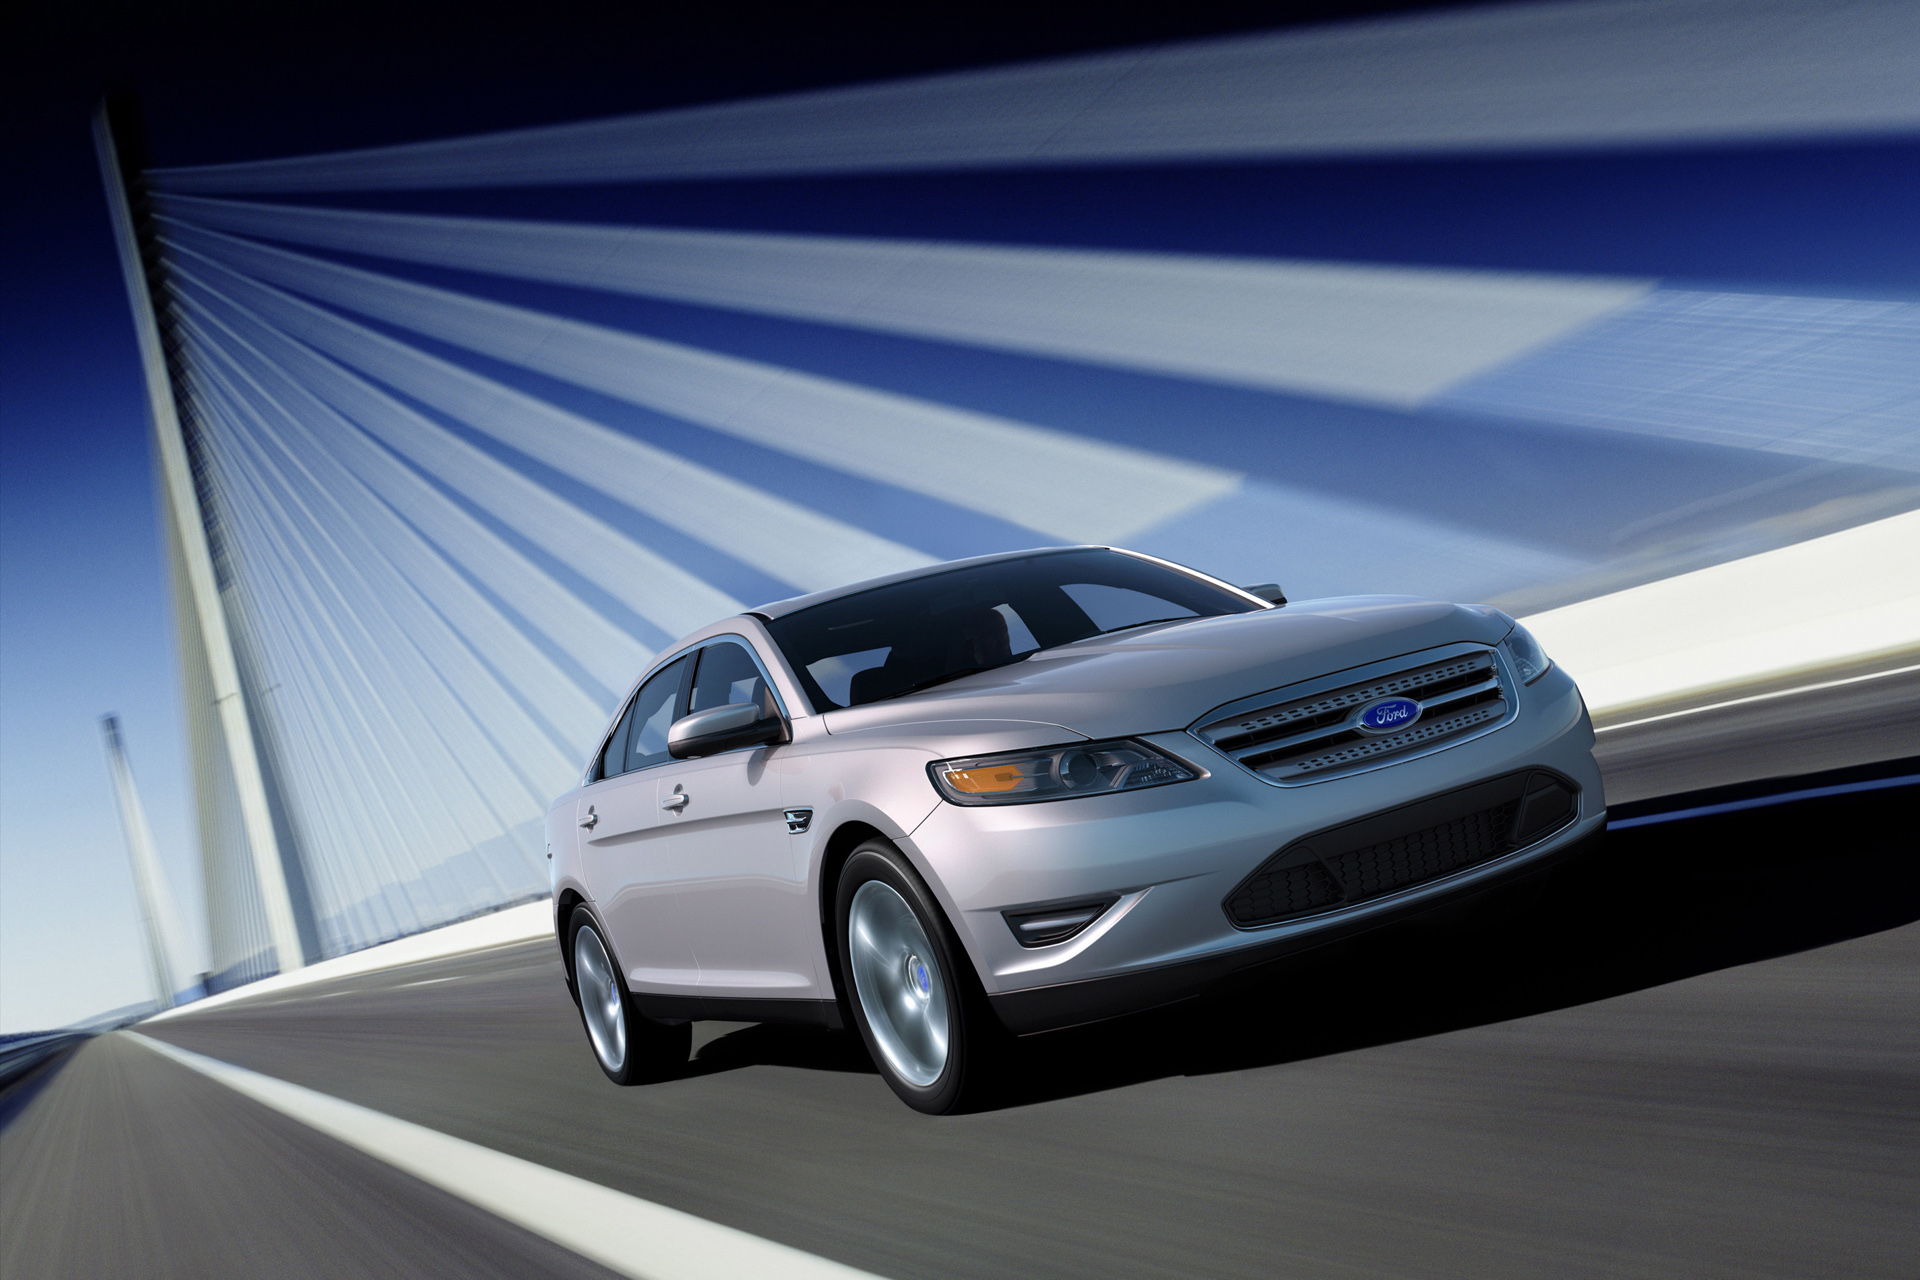 Ford Taurus photo 60587